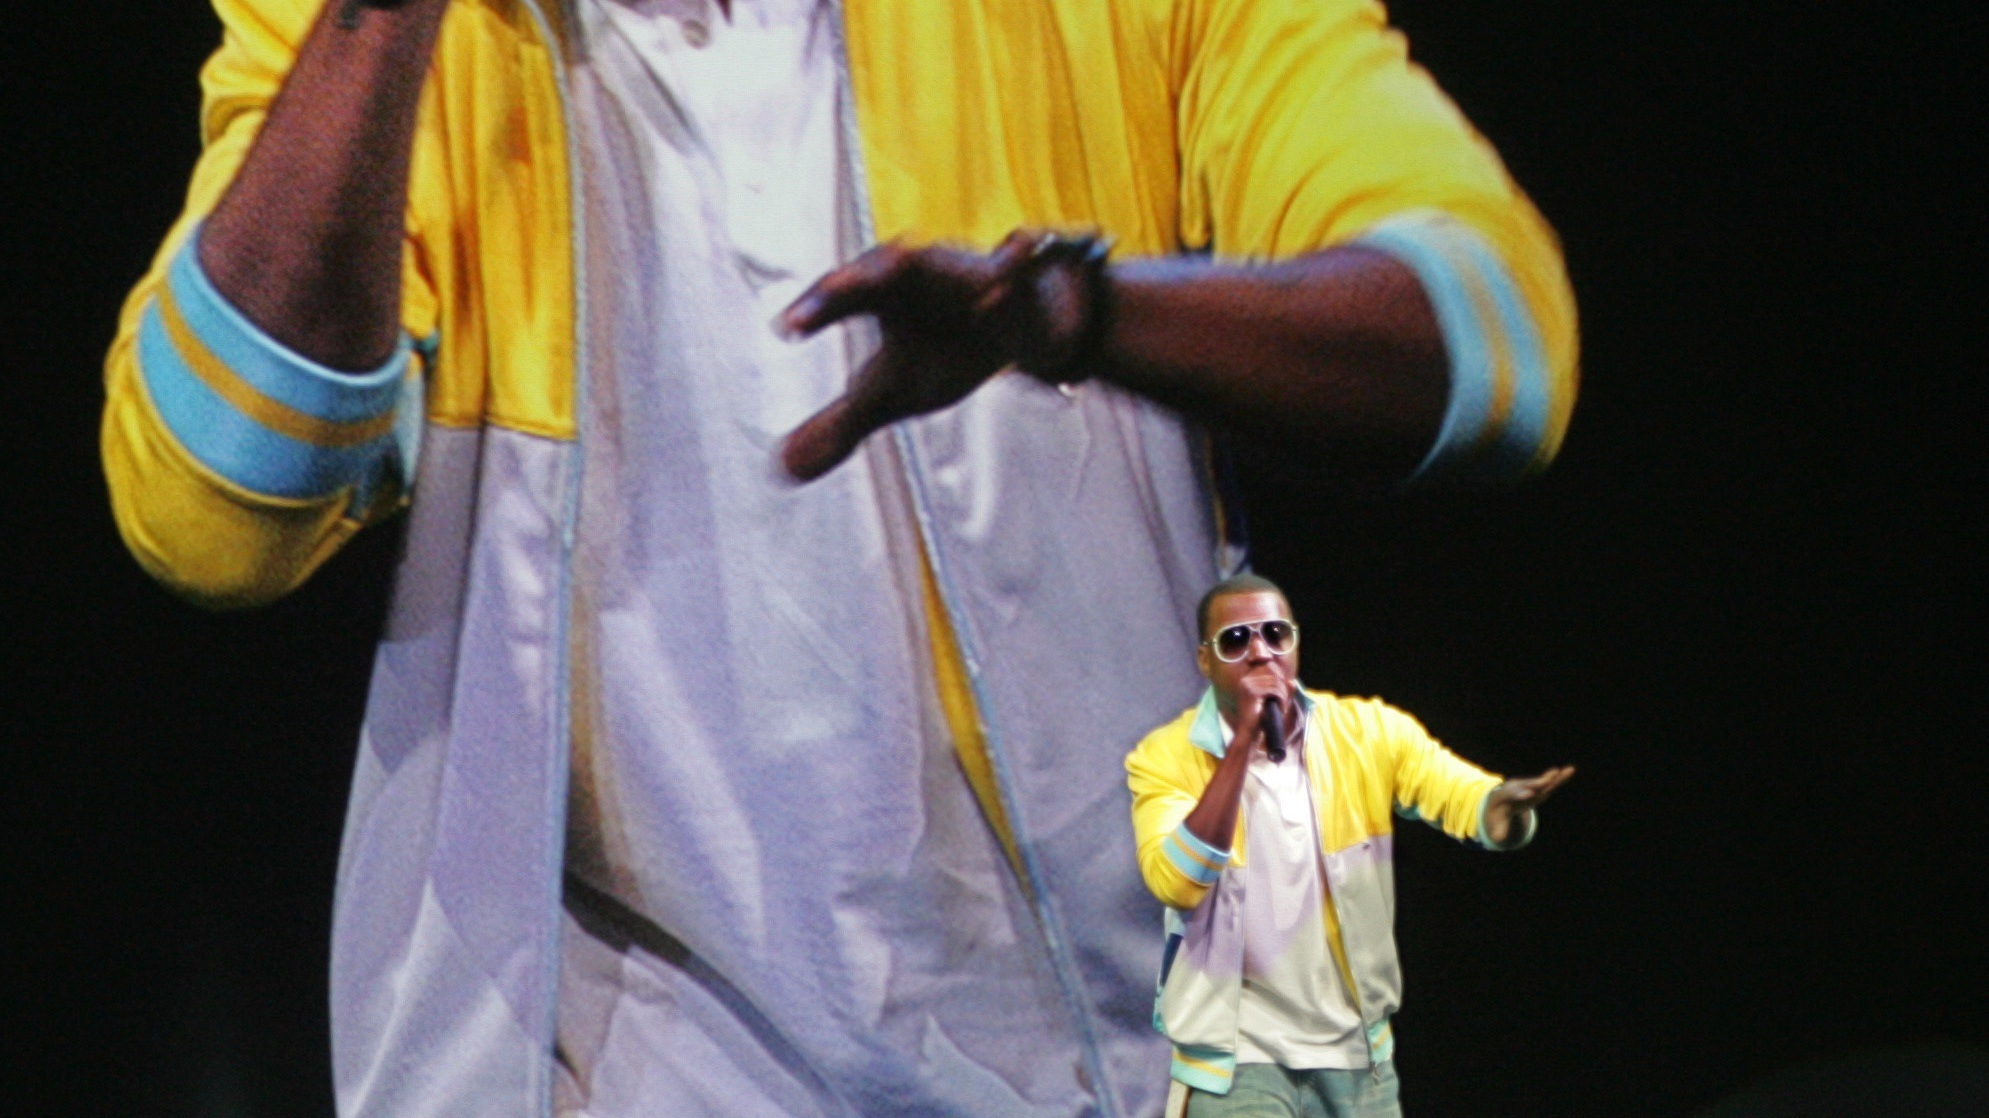 Rapper Kanye West performs at Apple Computers Inc. announcements regarding its new iPod Nano and mobile phone in San Francisco, Wednesday, Sept. 7, 2005. (AP Photo/Paul Sakuma)